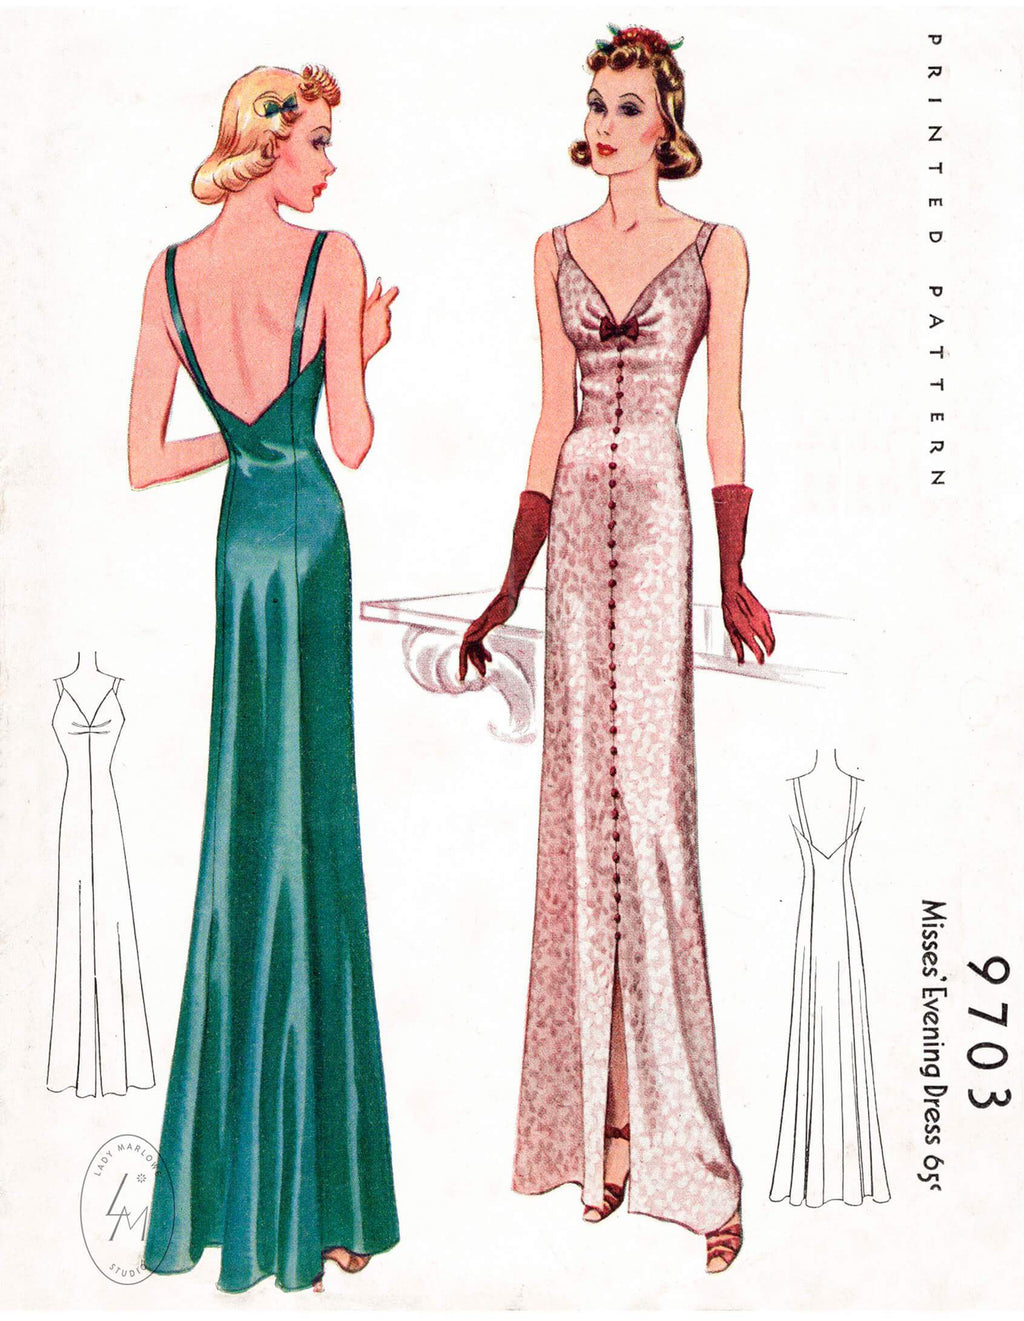 1930s 1938 McCall 9703 evening dress shoulder straps slip dress vintage sewing pattern reproduction